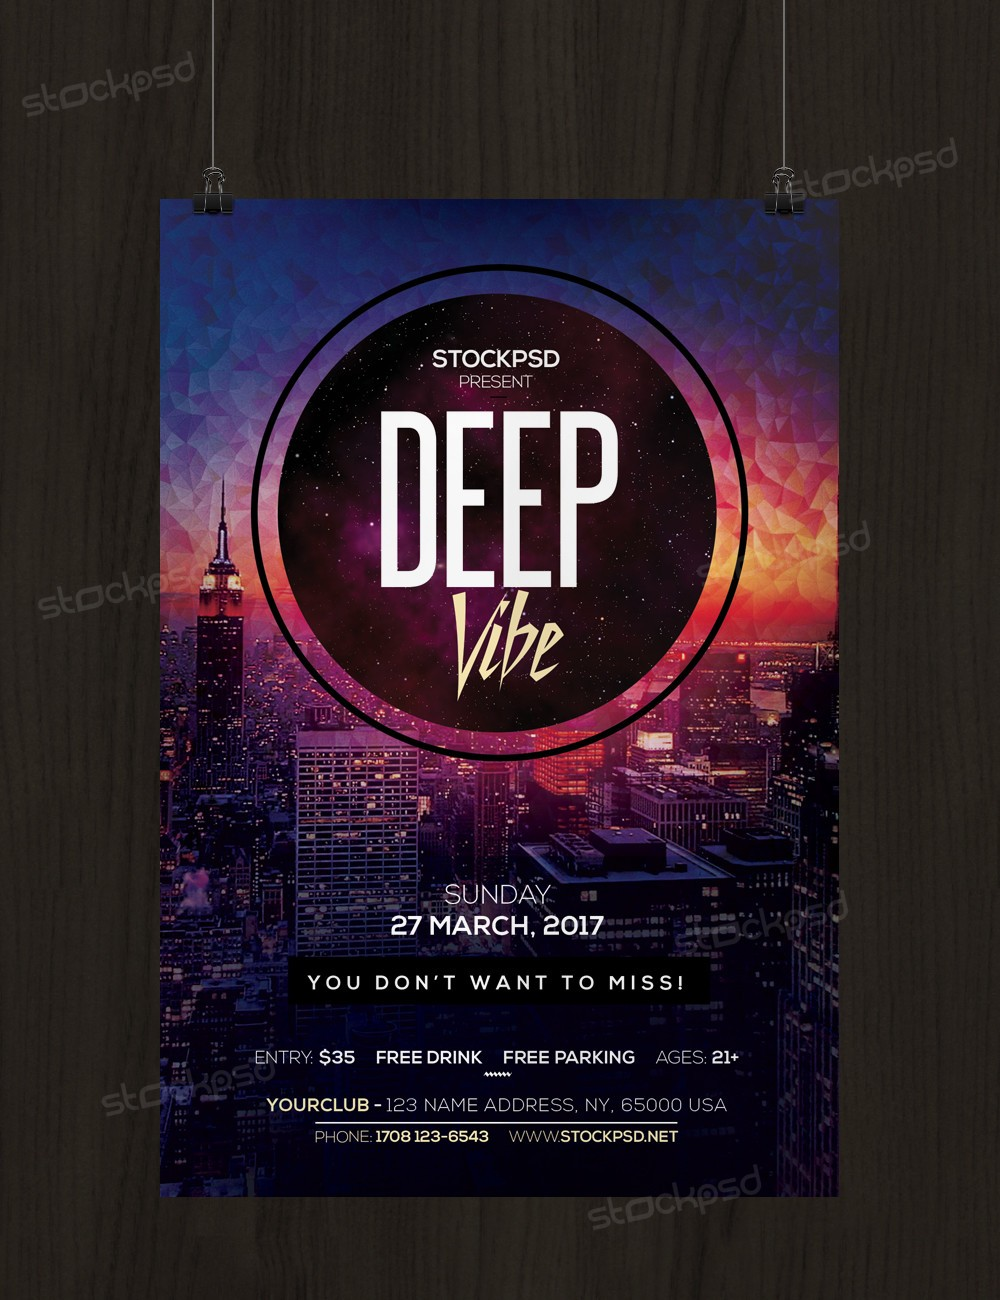 deep vibe psd flyer template net deep vibe is a psd flyer template to